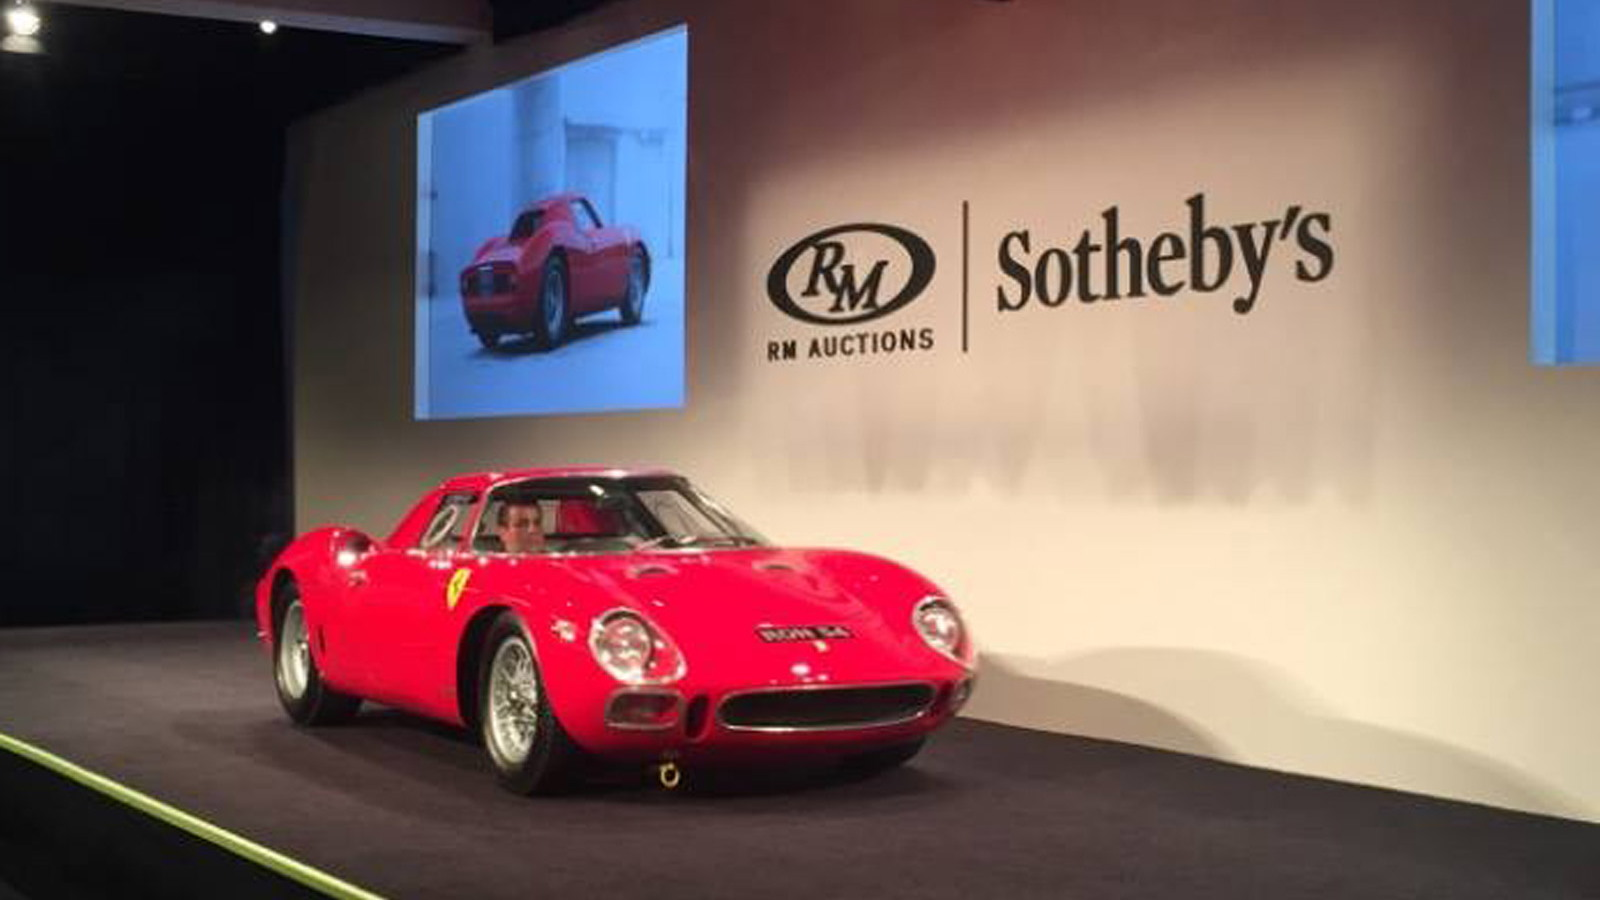 1964 Ferrari 250 LM sells for $17.6 million